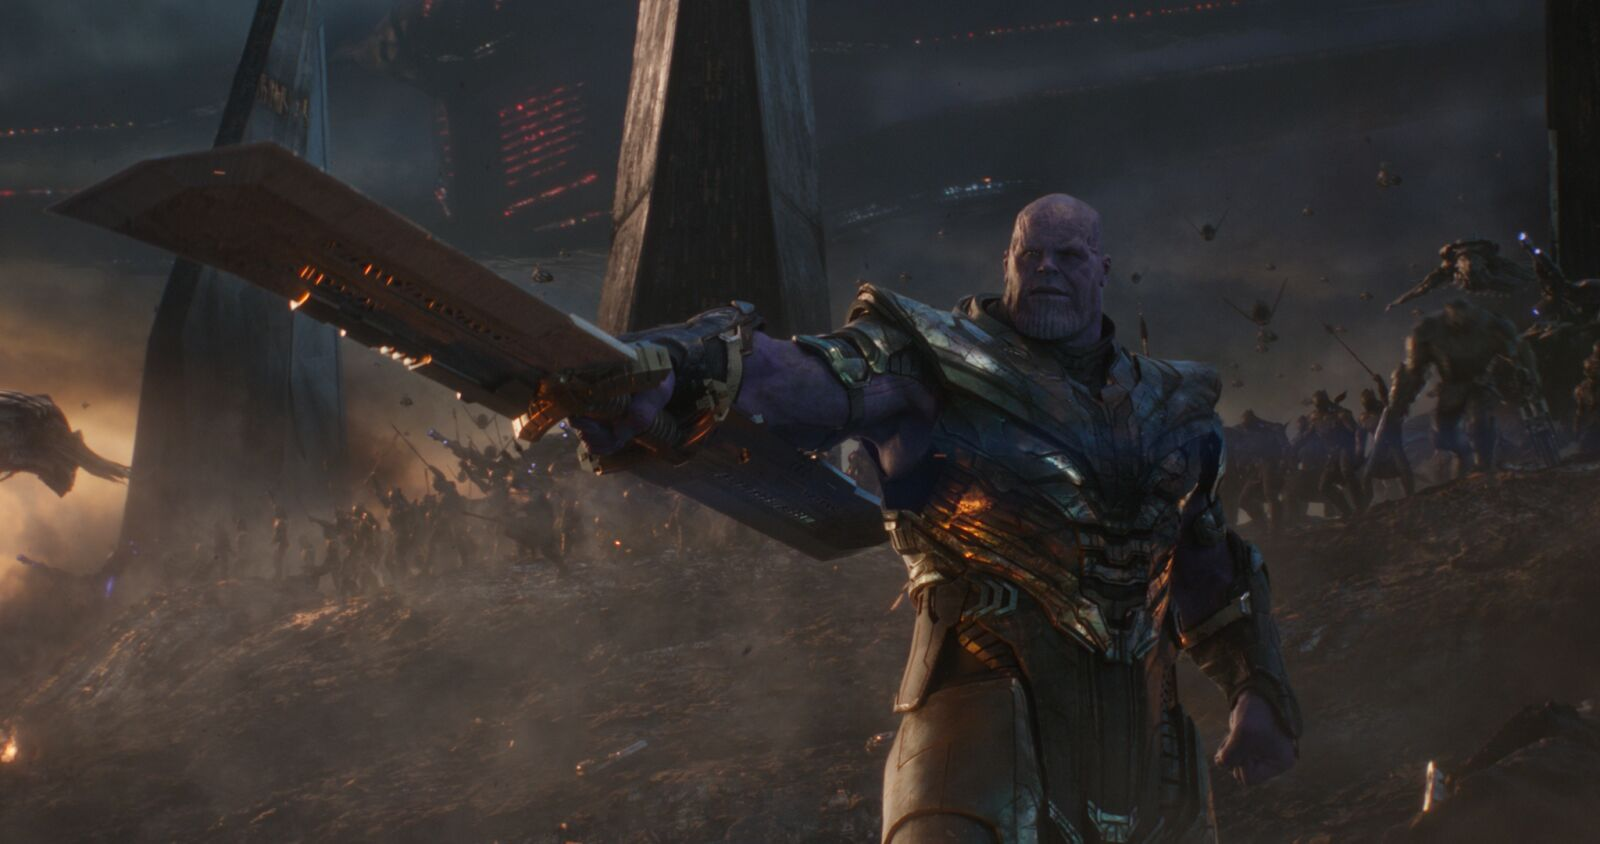 Thanos: The Mad Titan's 7 best moments in the Marvel Cinematic Universe